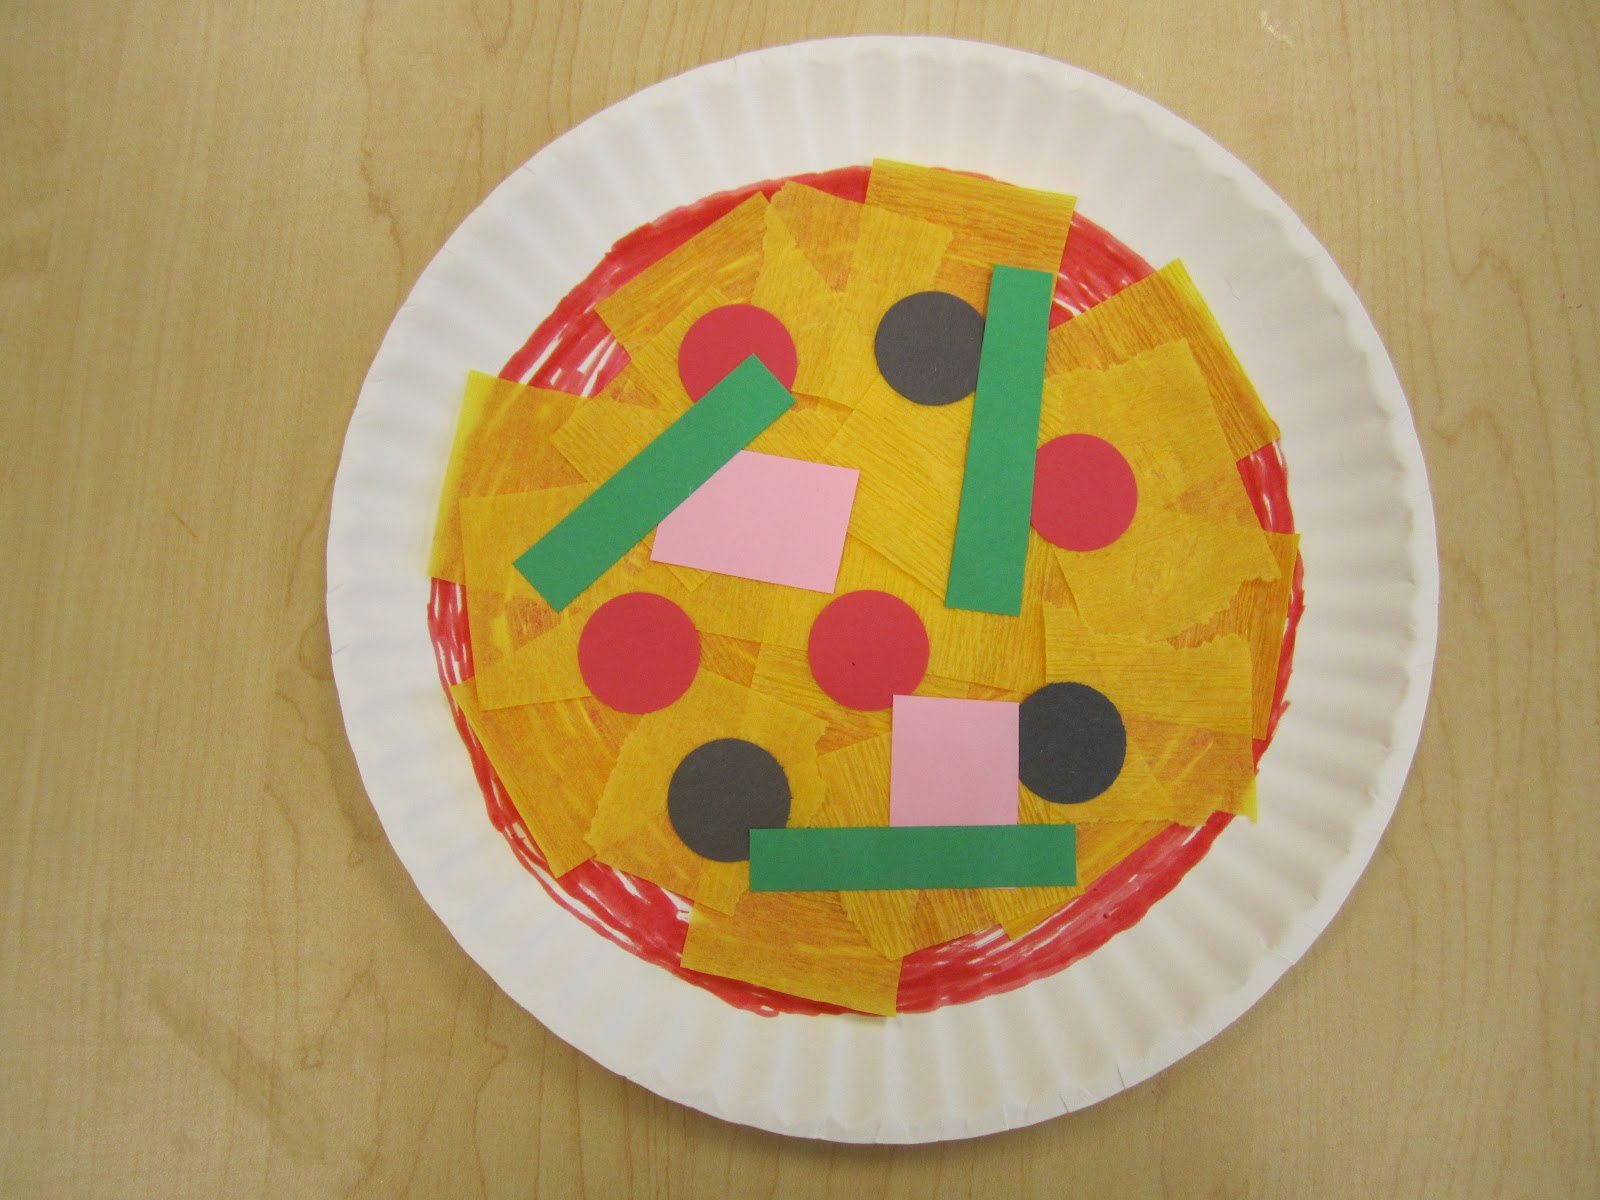 Kids39 Bibliotheque Pizza Storytime & Paper Plate Pizza Craft - Castrophotos